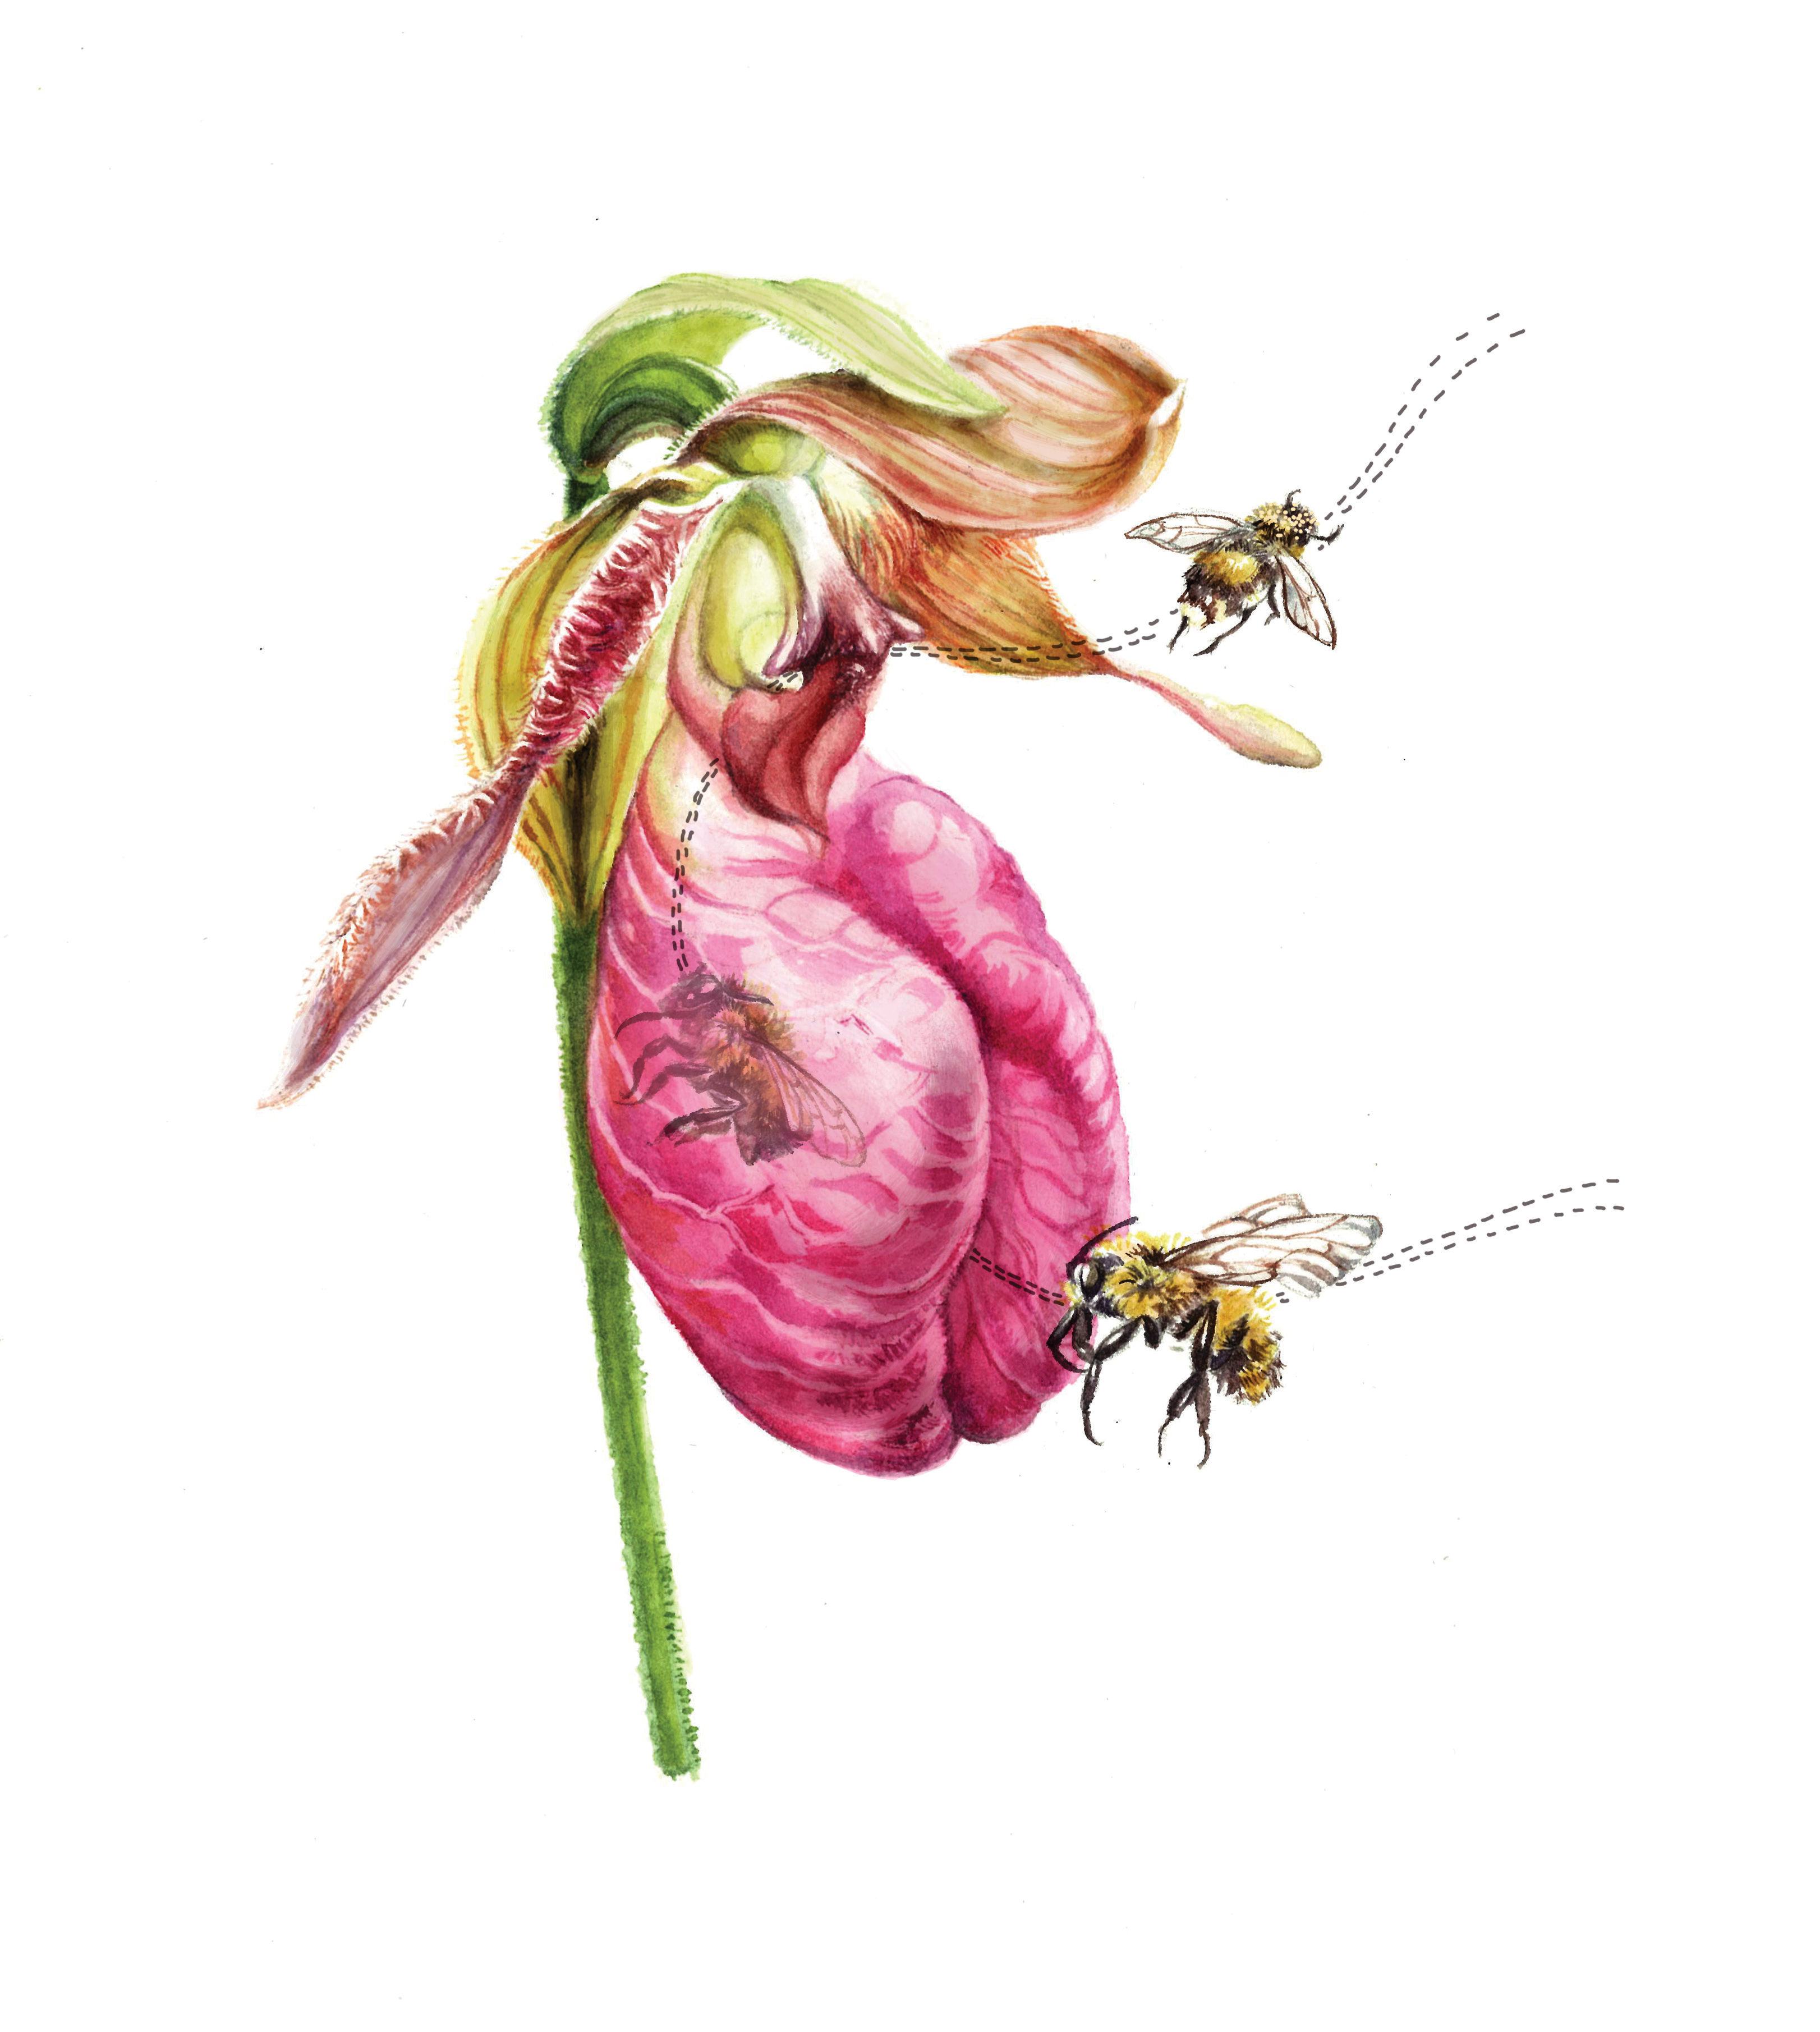 An illustration of pink lady's slipper orchid with bees